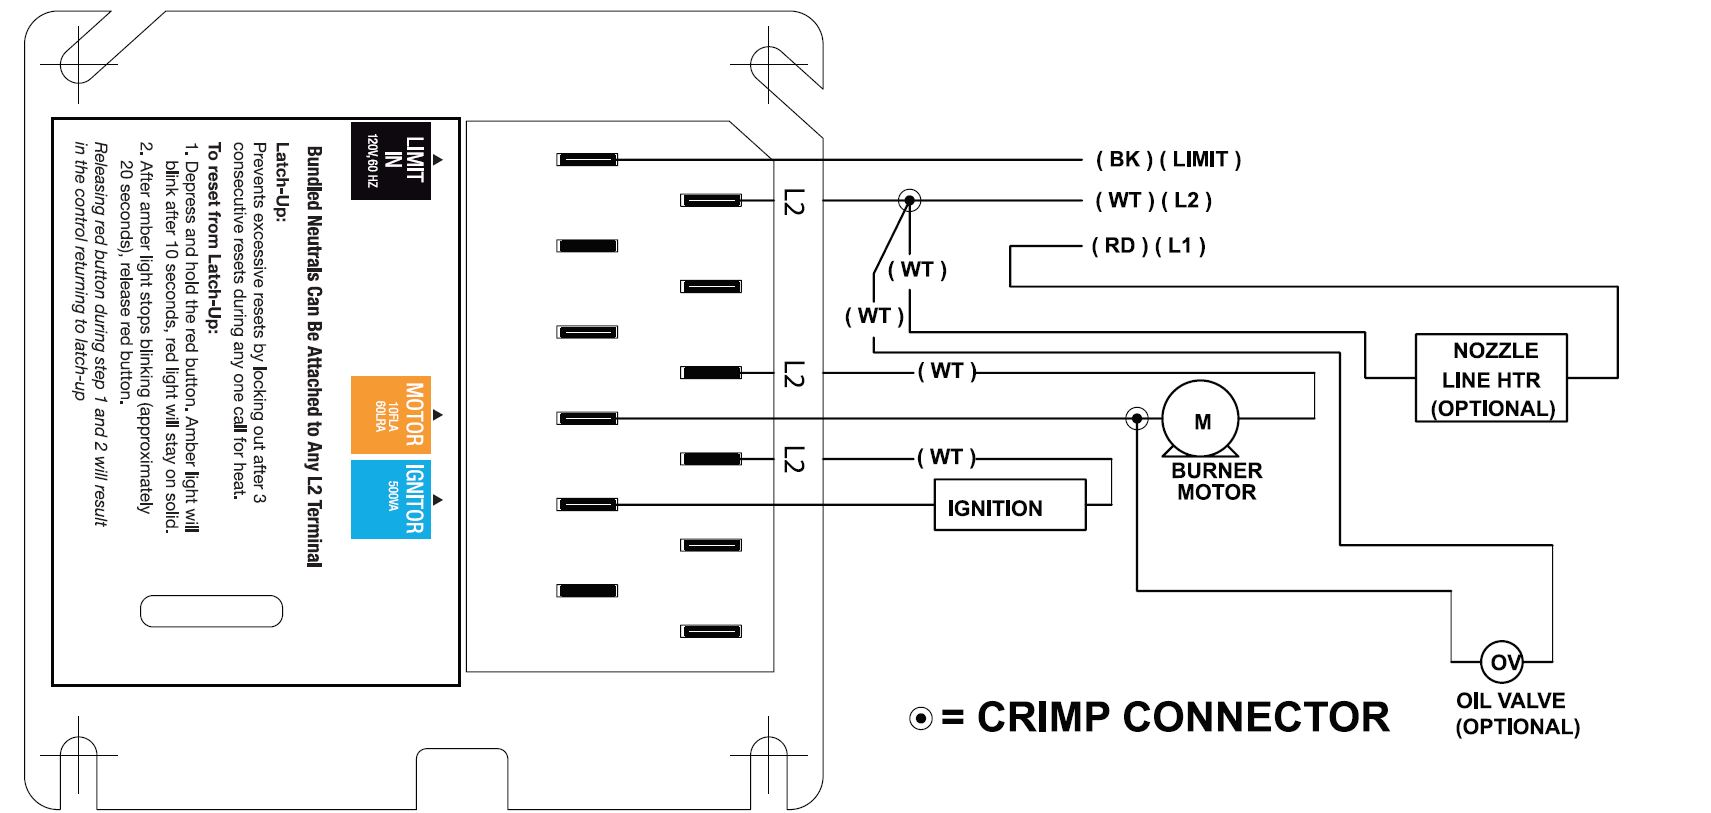 Beckett Burner Wiring Diagram